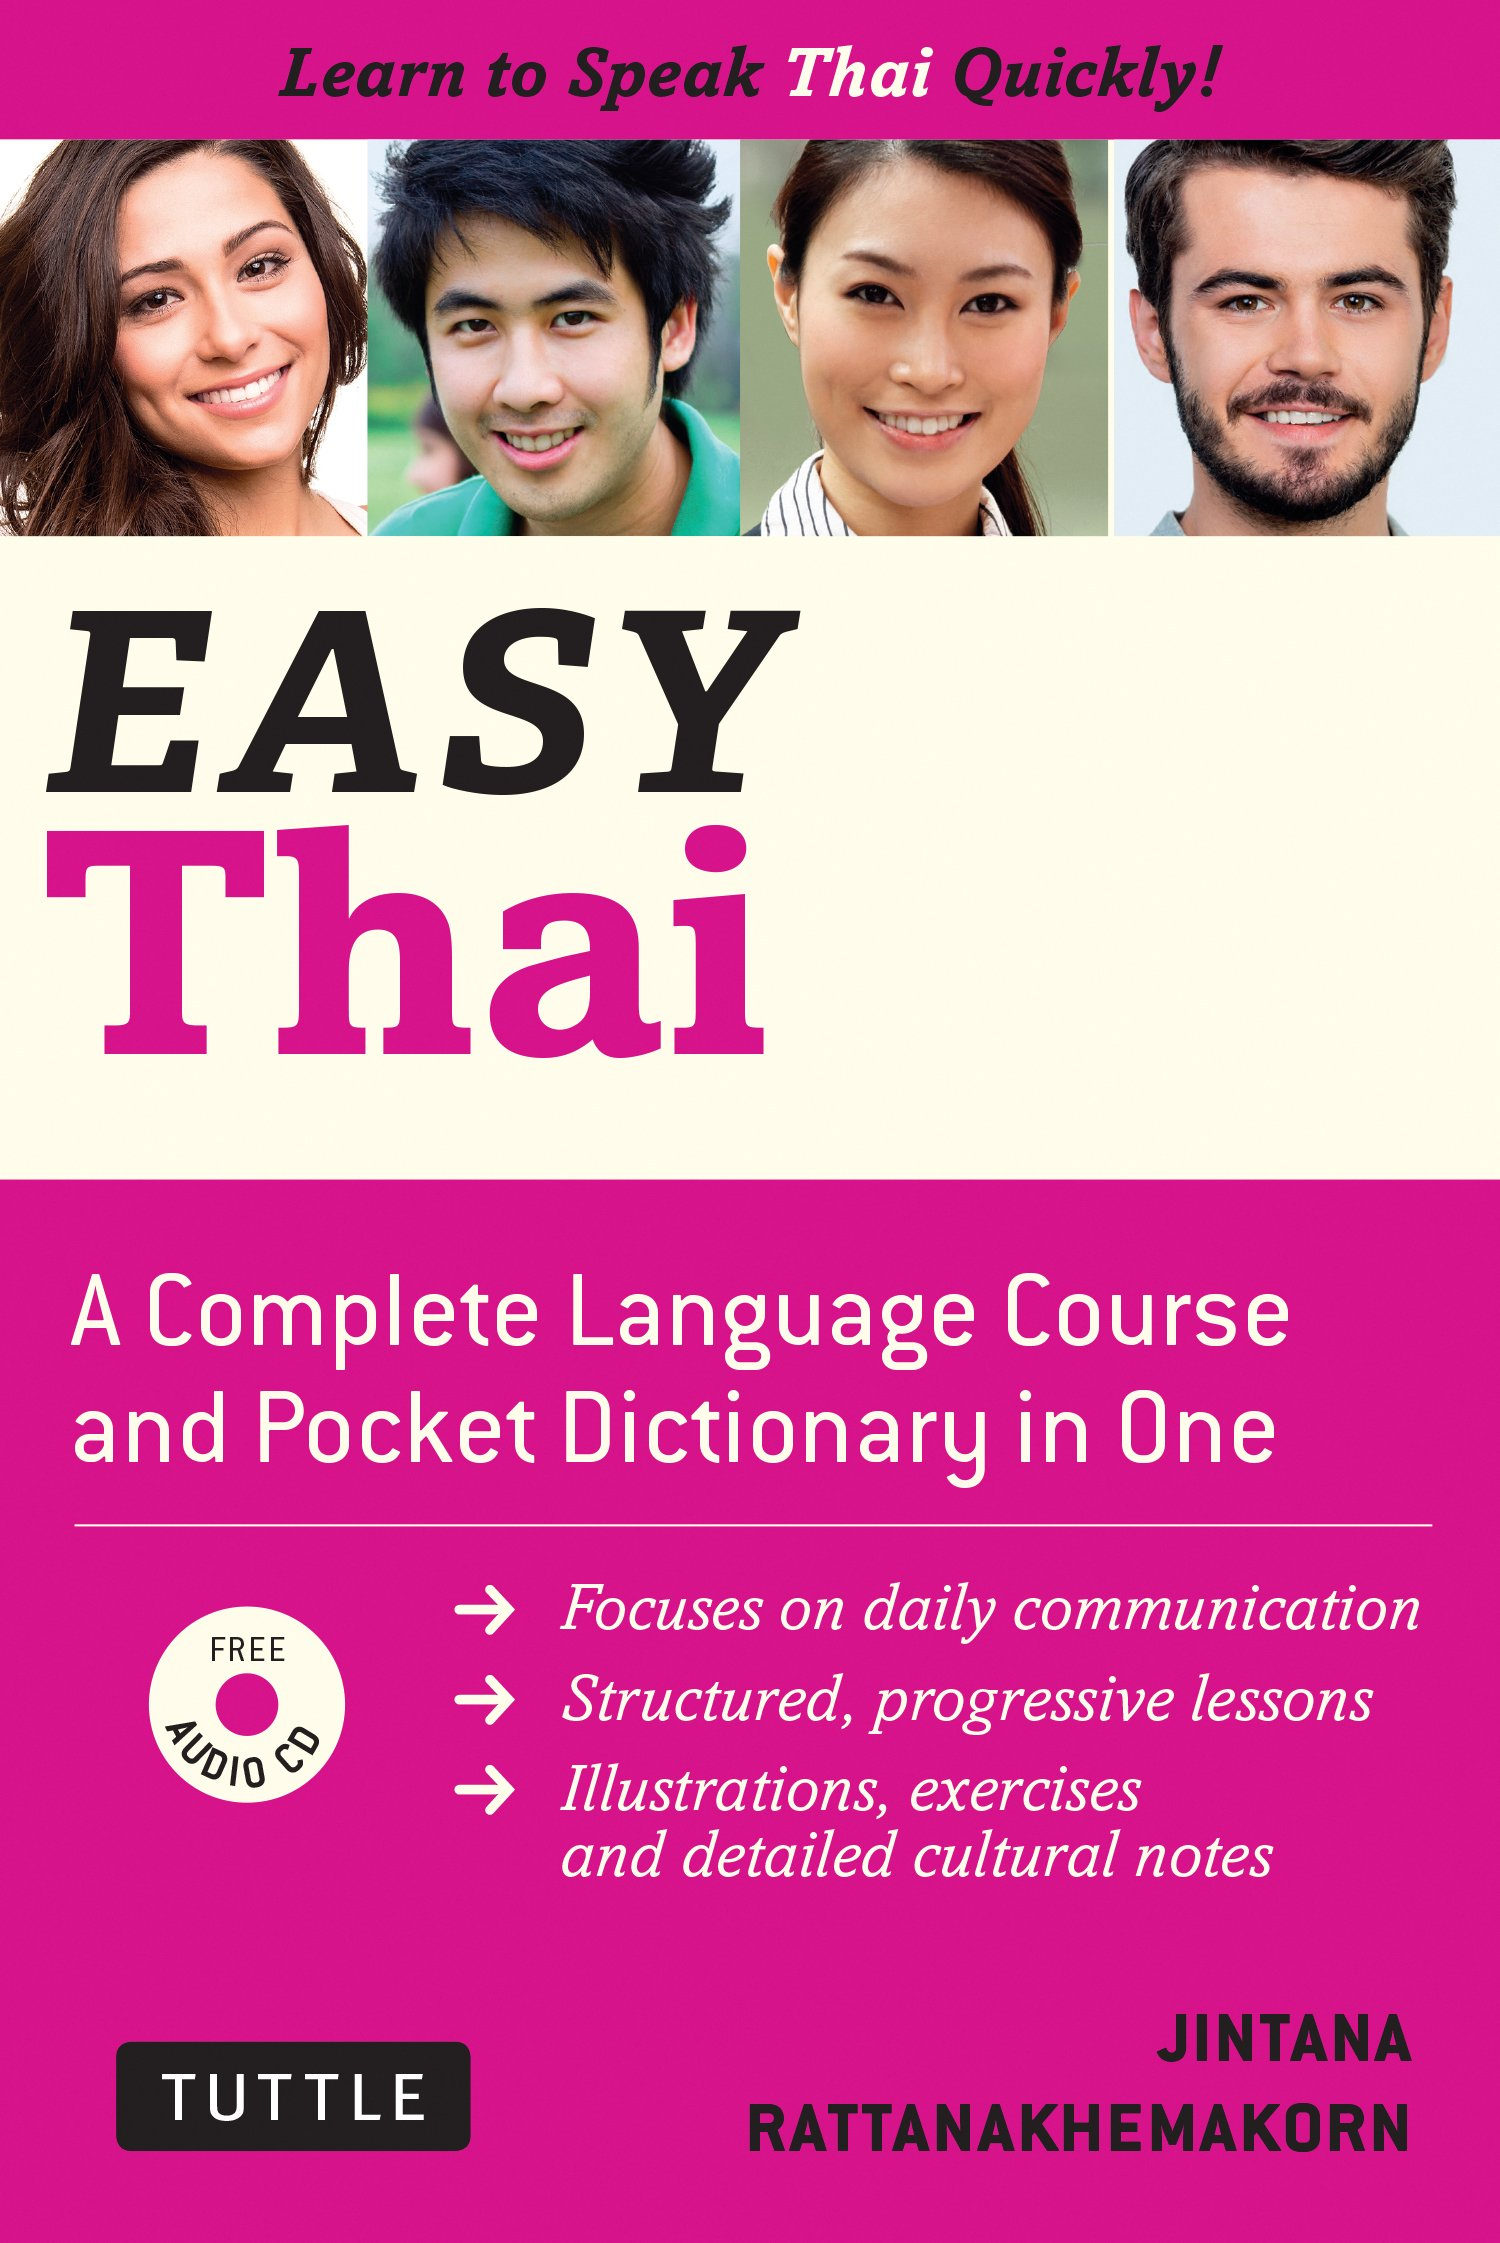 Easy Thai: Learn to Speak Thai Quickly (Includes Audio CD) (Easy Language) by Tuttle Publishing